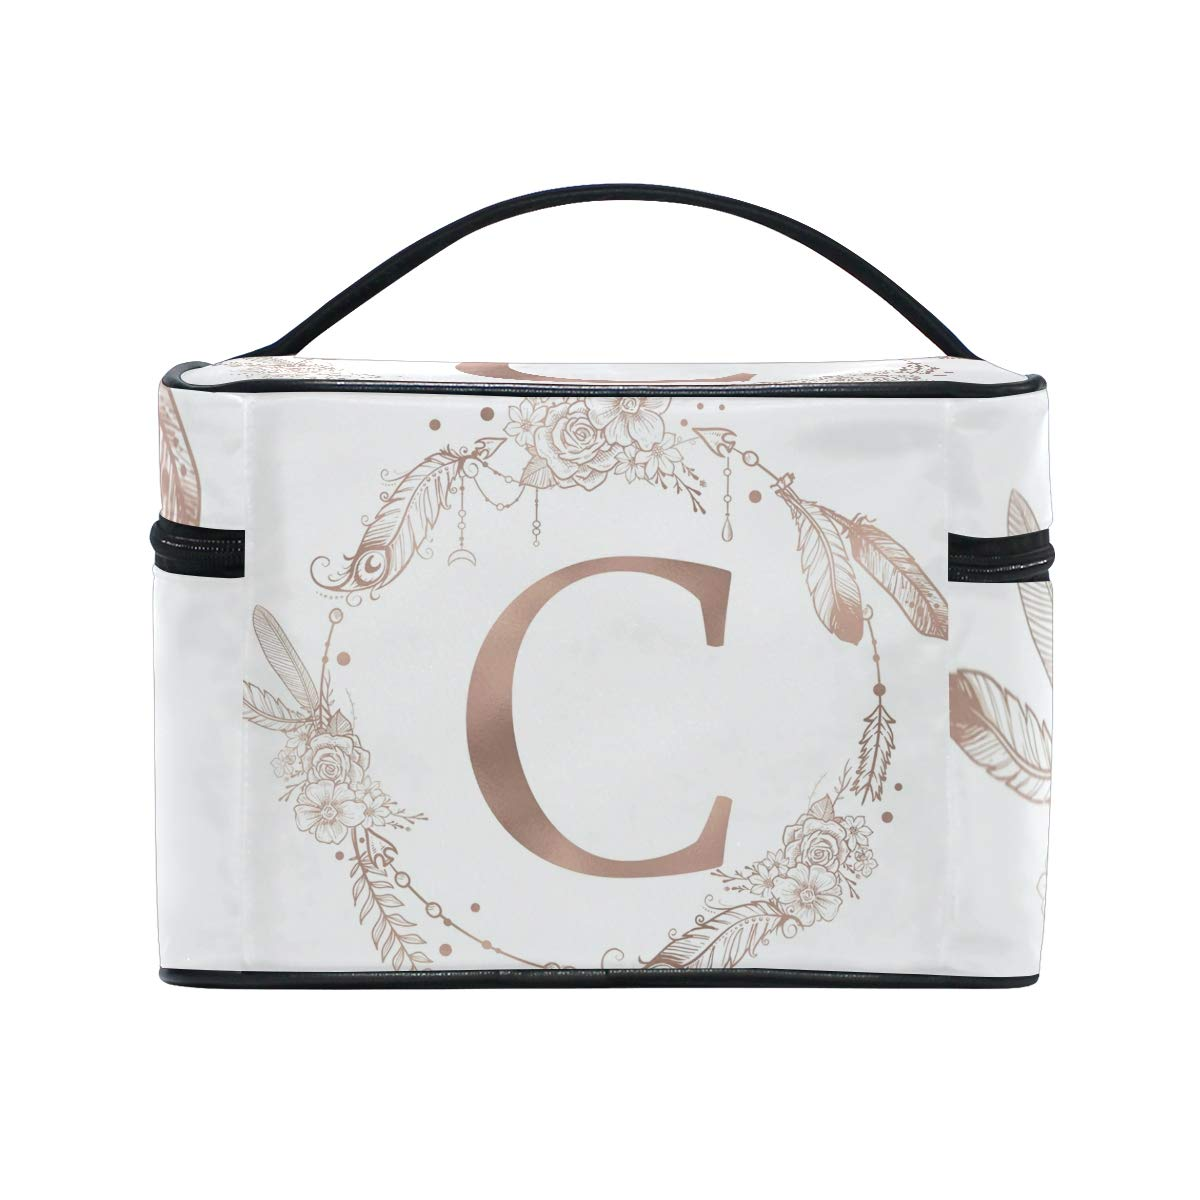 Letter C Initial Monogram Cosmetic Bags Organizer- Travel Makeup Pouch Ladies Toiletry Train Case for Women Girls, CoTime Black Zipper and Flat Bottom